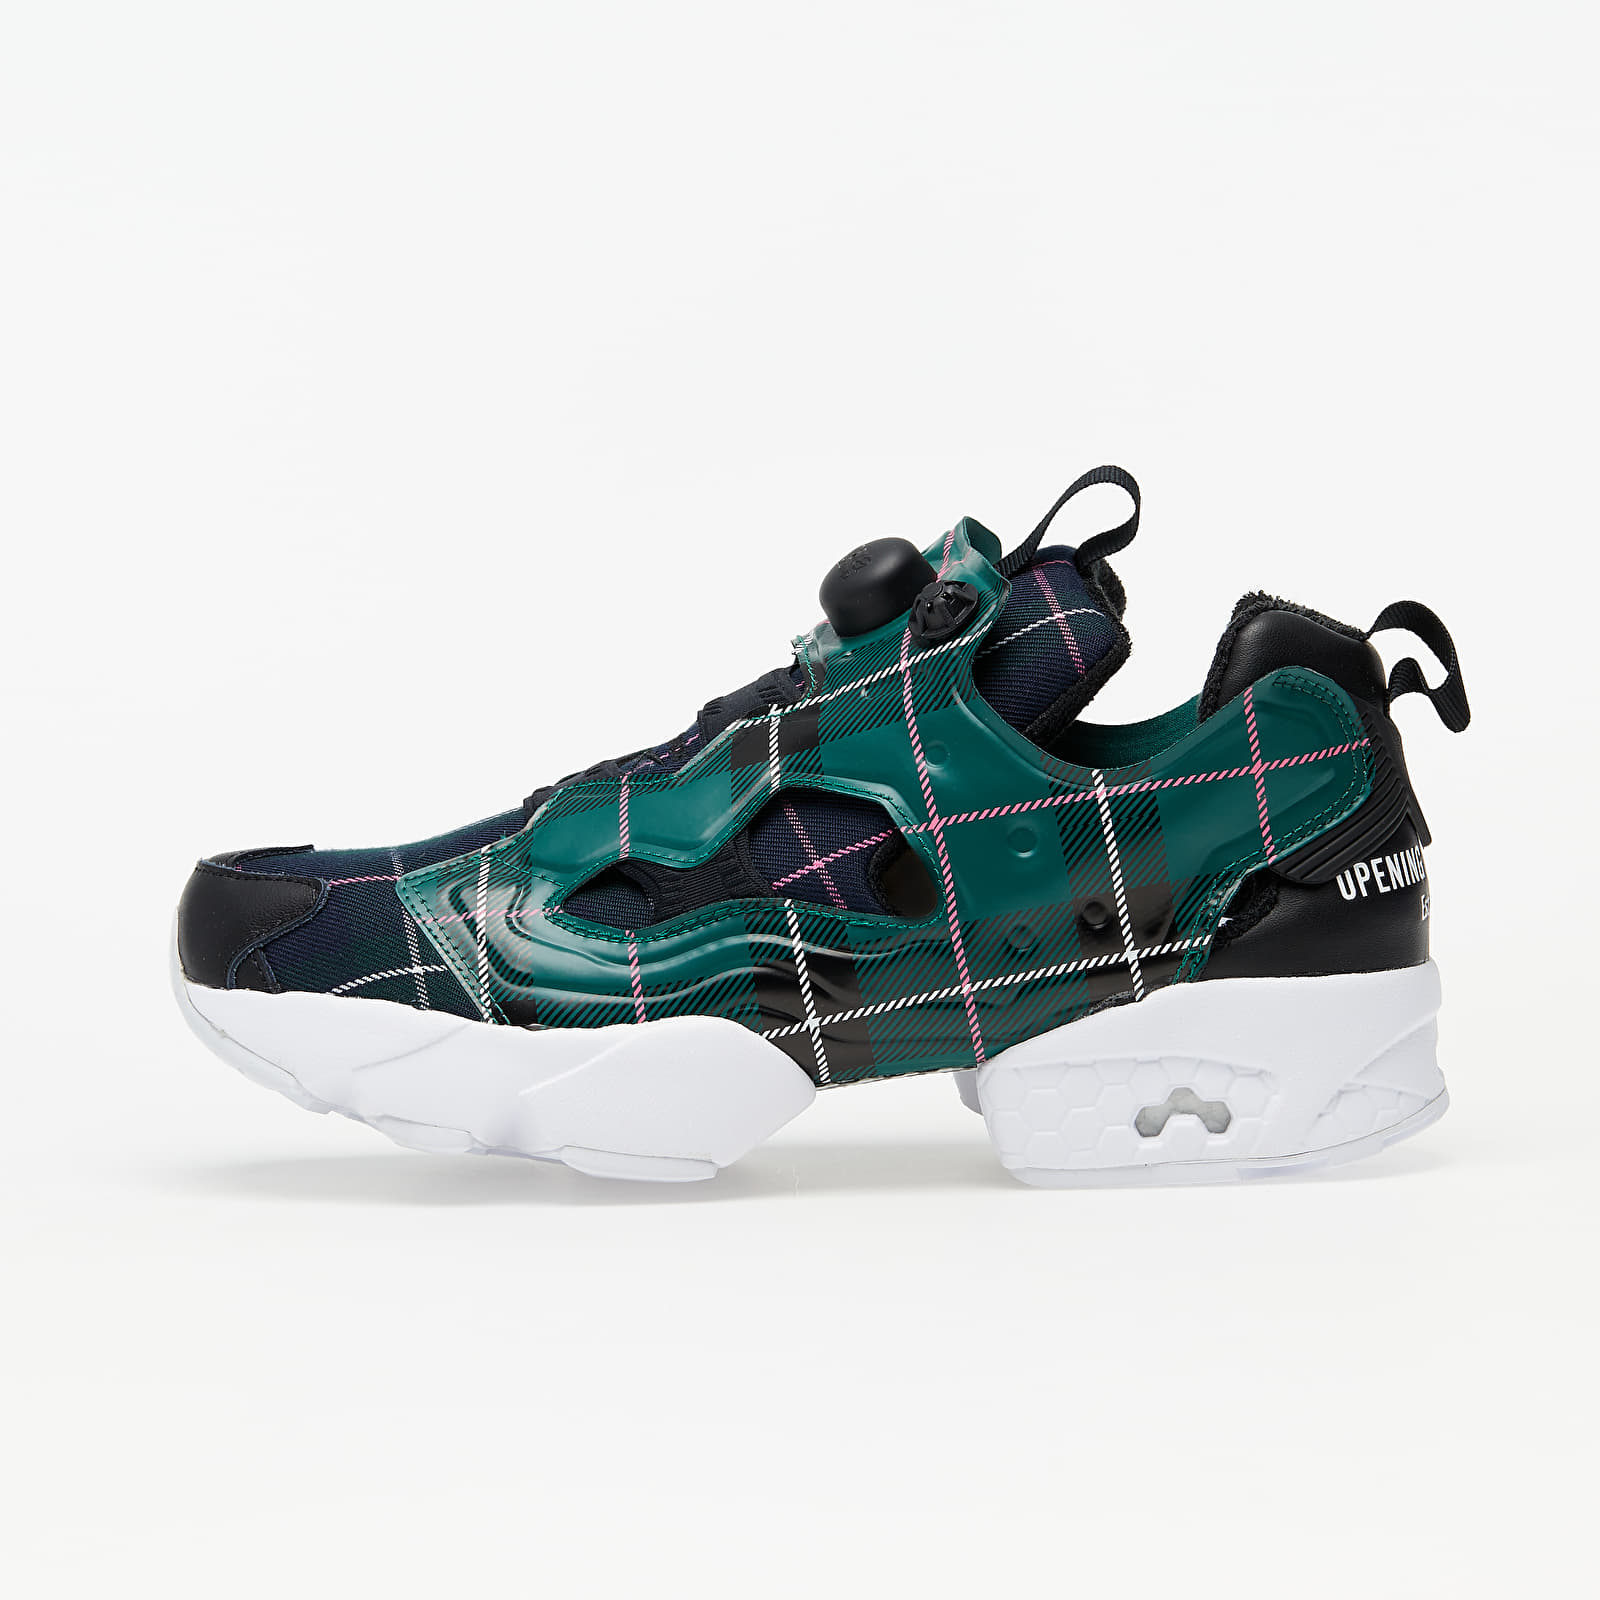 Chaussures et baskets homme Reebok x Opening Ceremony Instapump Fury OG M White/ Black/ Phanton